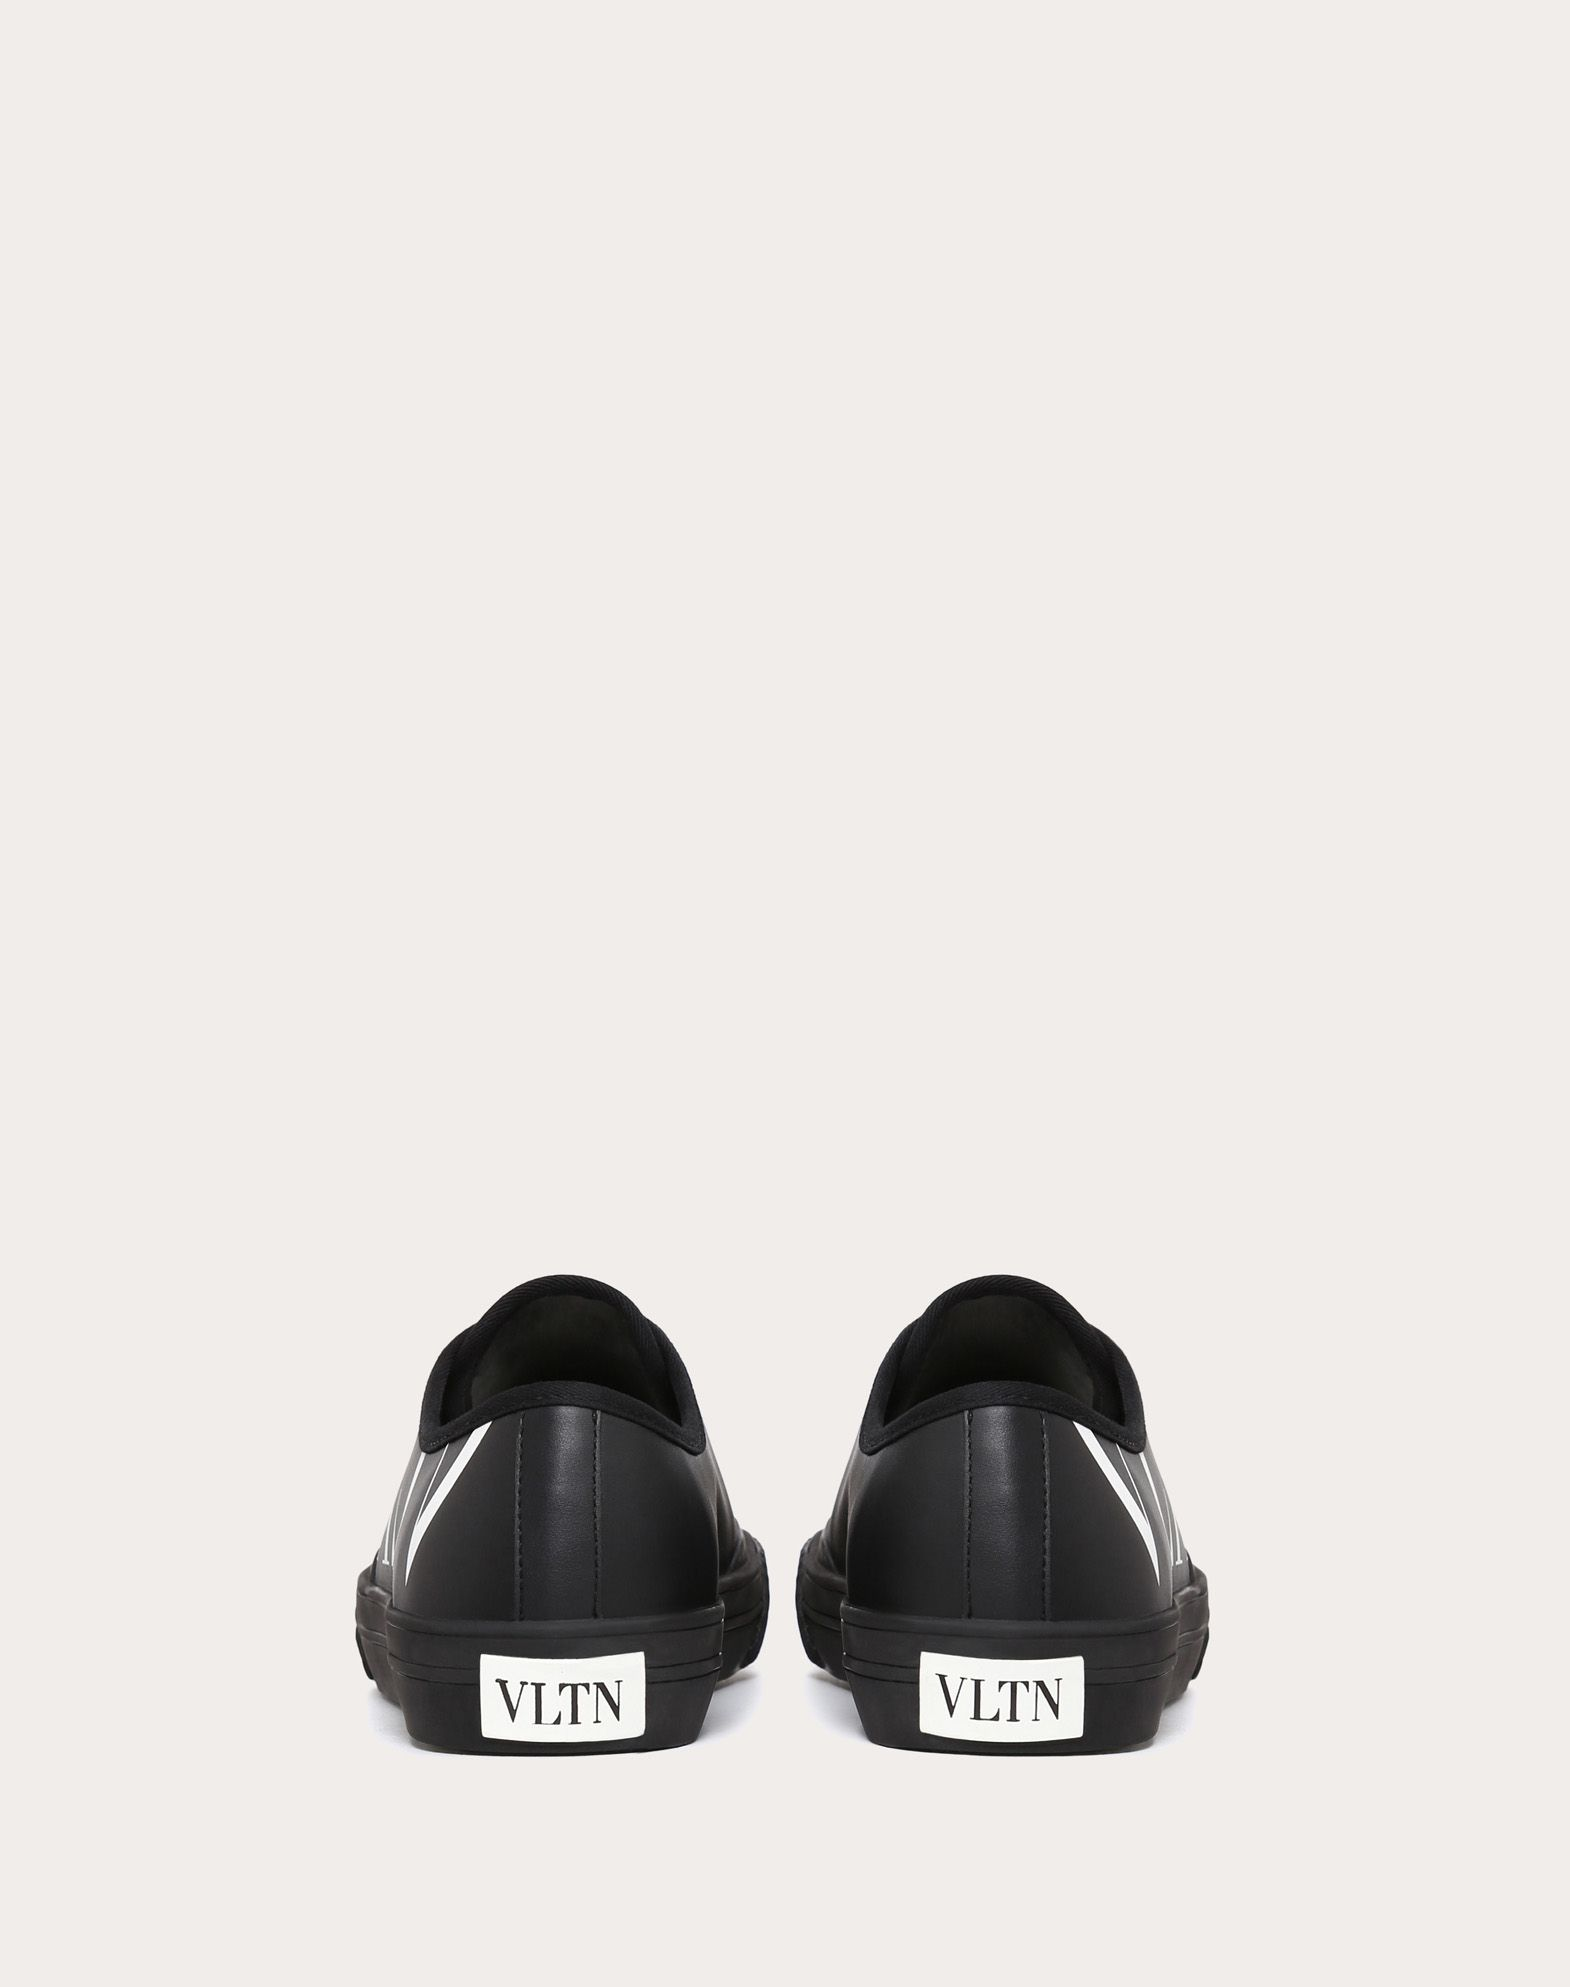 VALENTINO Logo Laces Rubber sole Solid color Leather lining  45406000ti